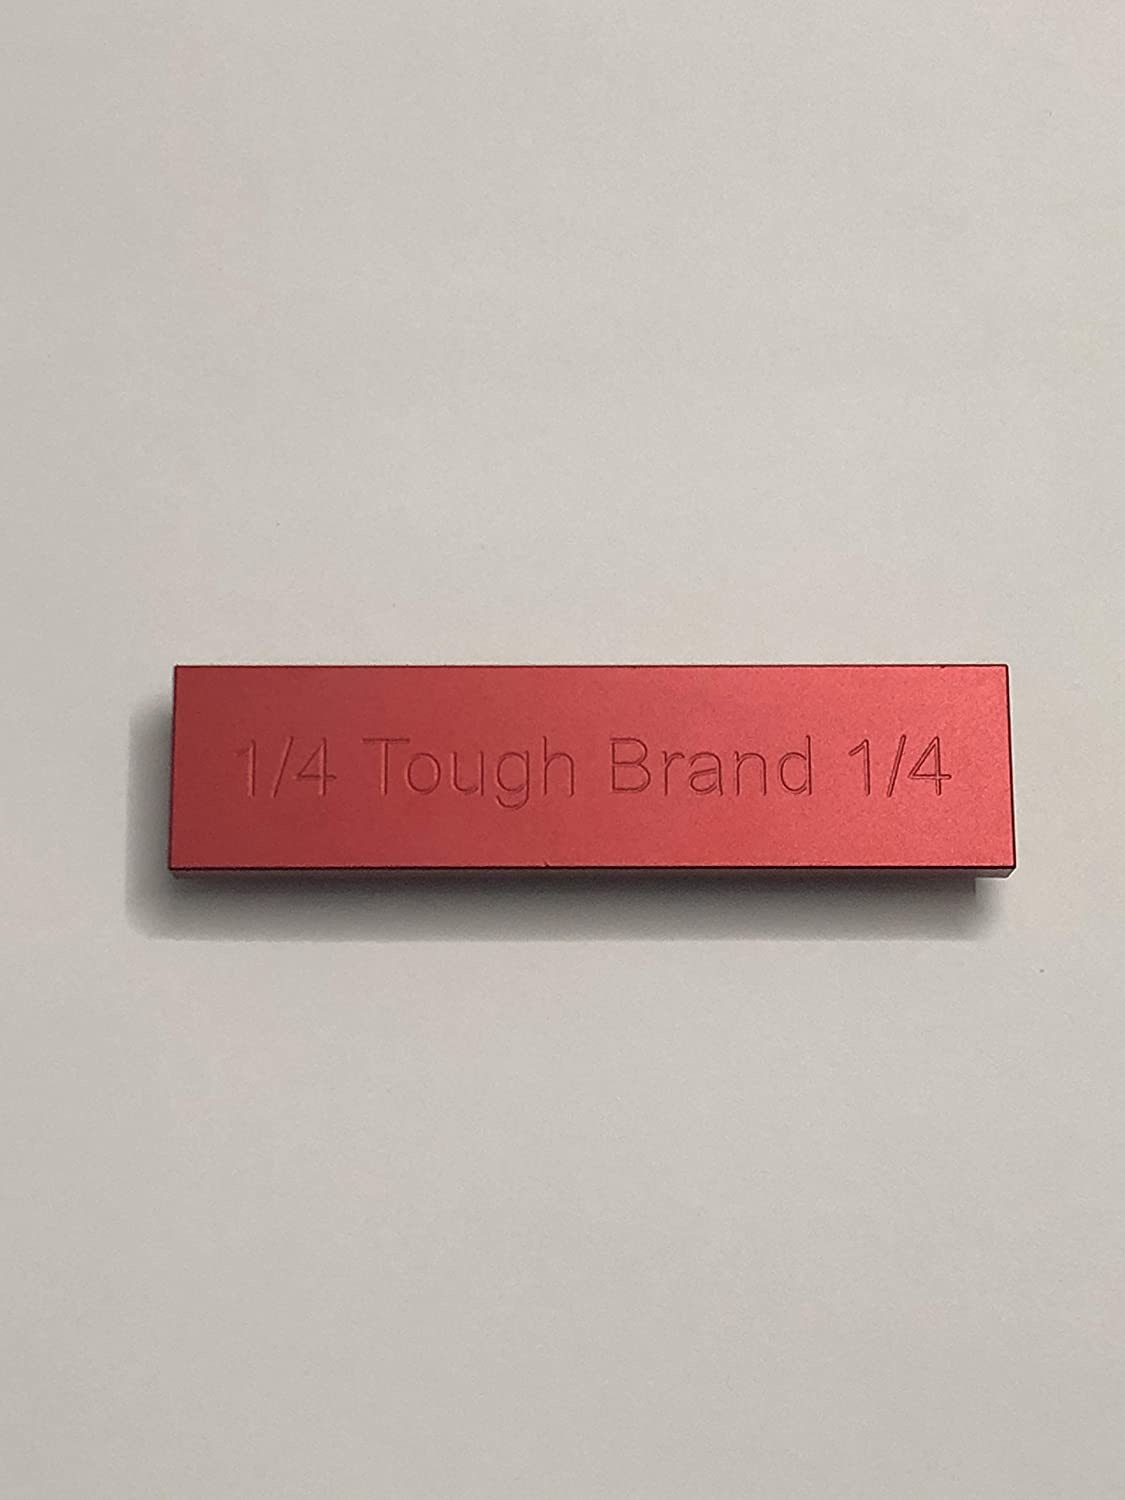 Wood Spacing Tool CNC Machined Installation Tool. Trim Reveal Tool Billet Aluminum The Tough Brand 1//4 Trim Molding Spacer//Reveal Tool